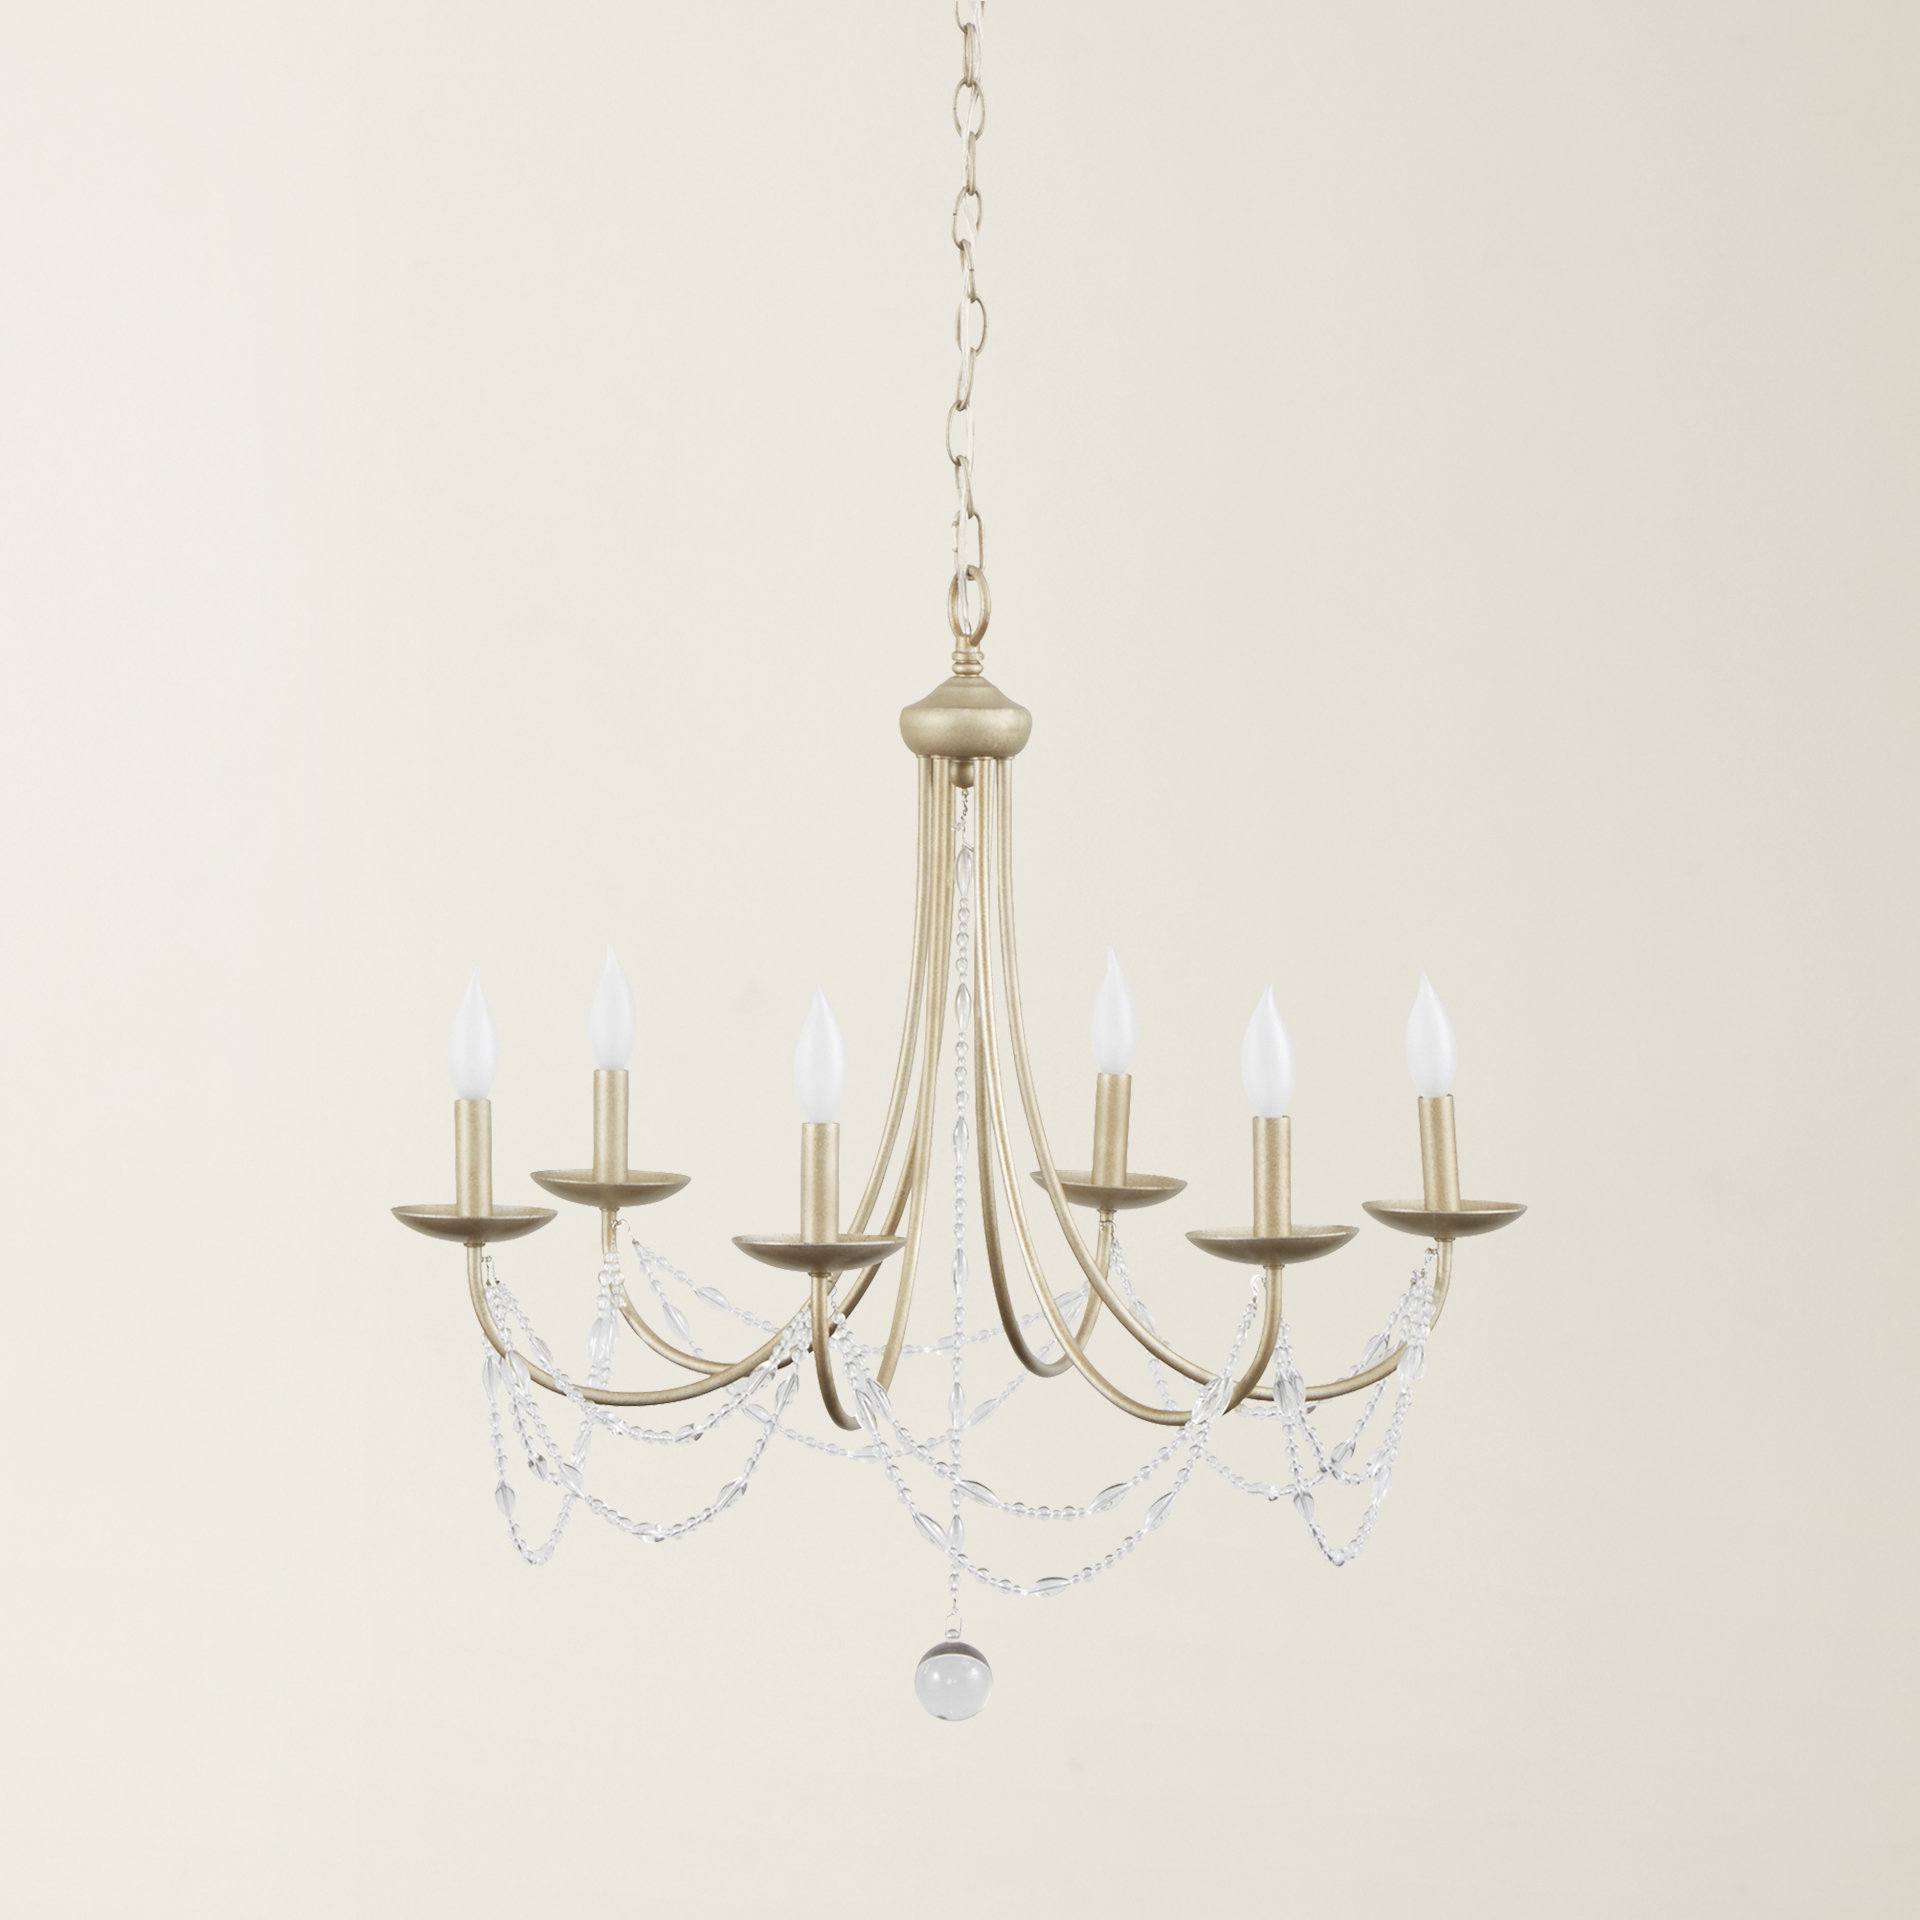 Nantucket 6 Light Candle Style Chandelier For Most Up To Date Shaylee 8 Light Candle Style Chandeliers (View 12 of 20)